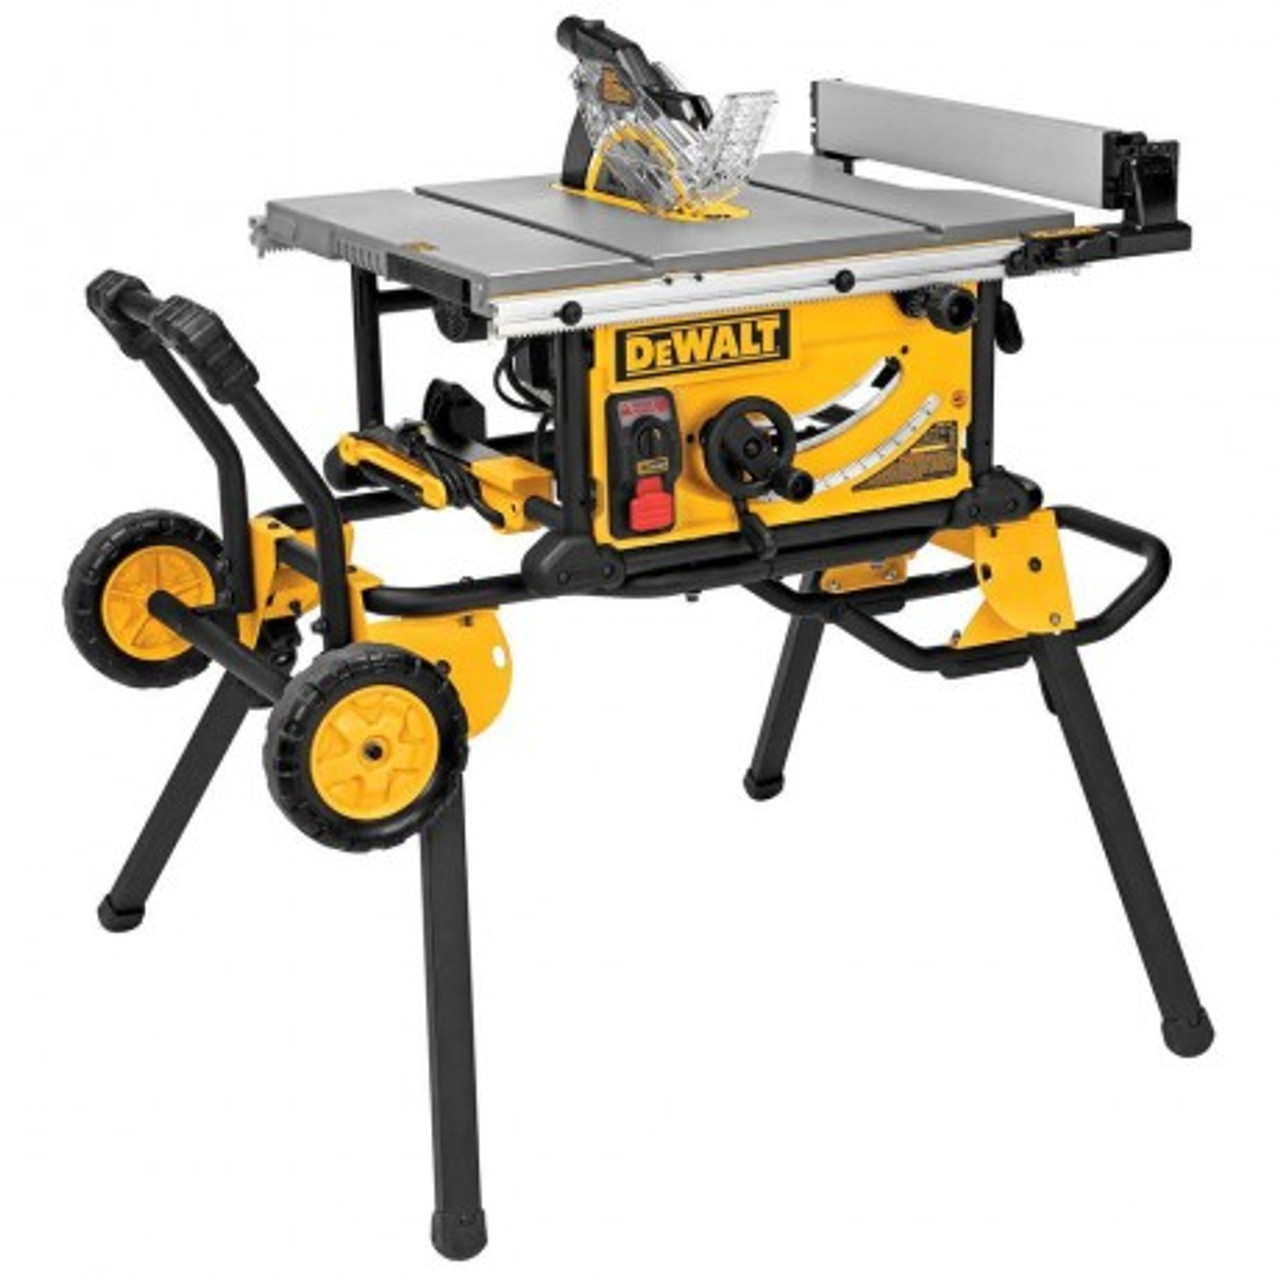 DEWALT 10 INCH JOBSITE TABLE SAW